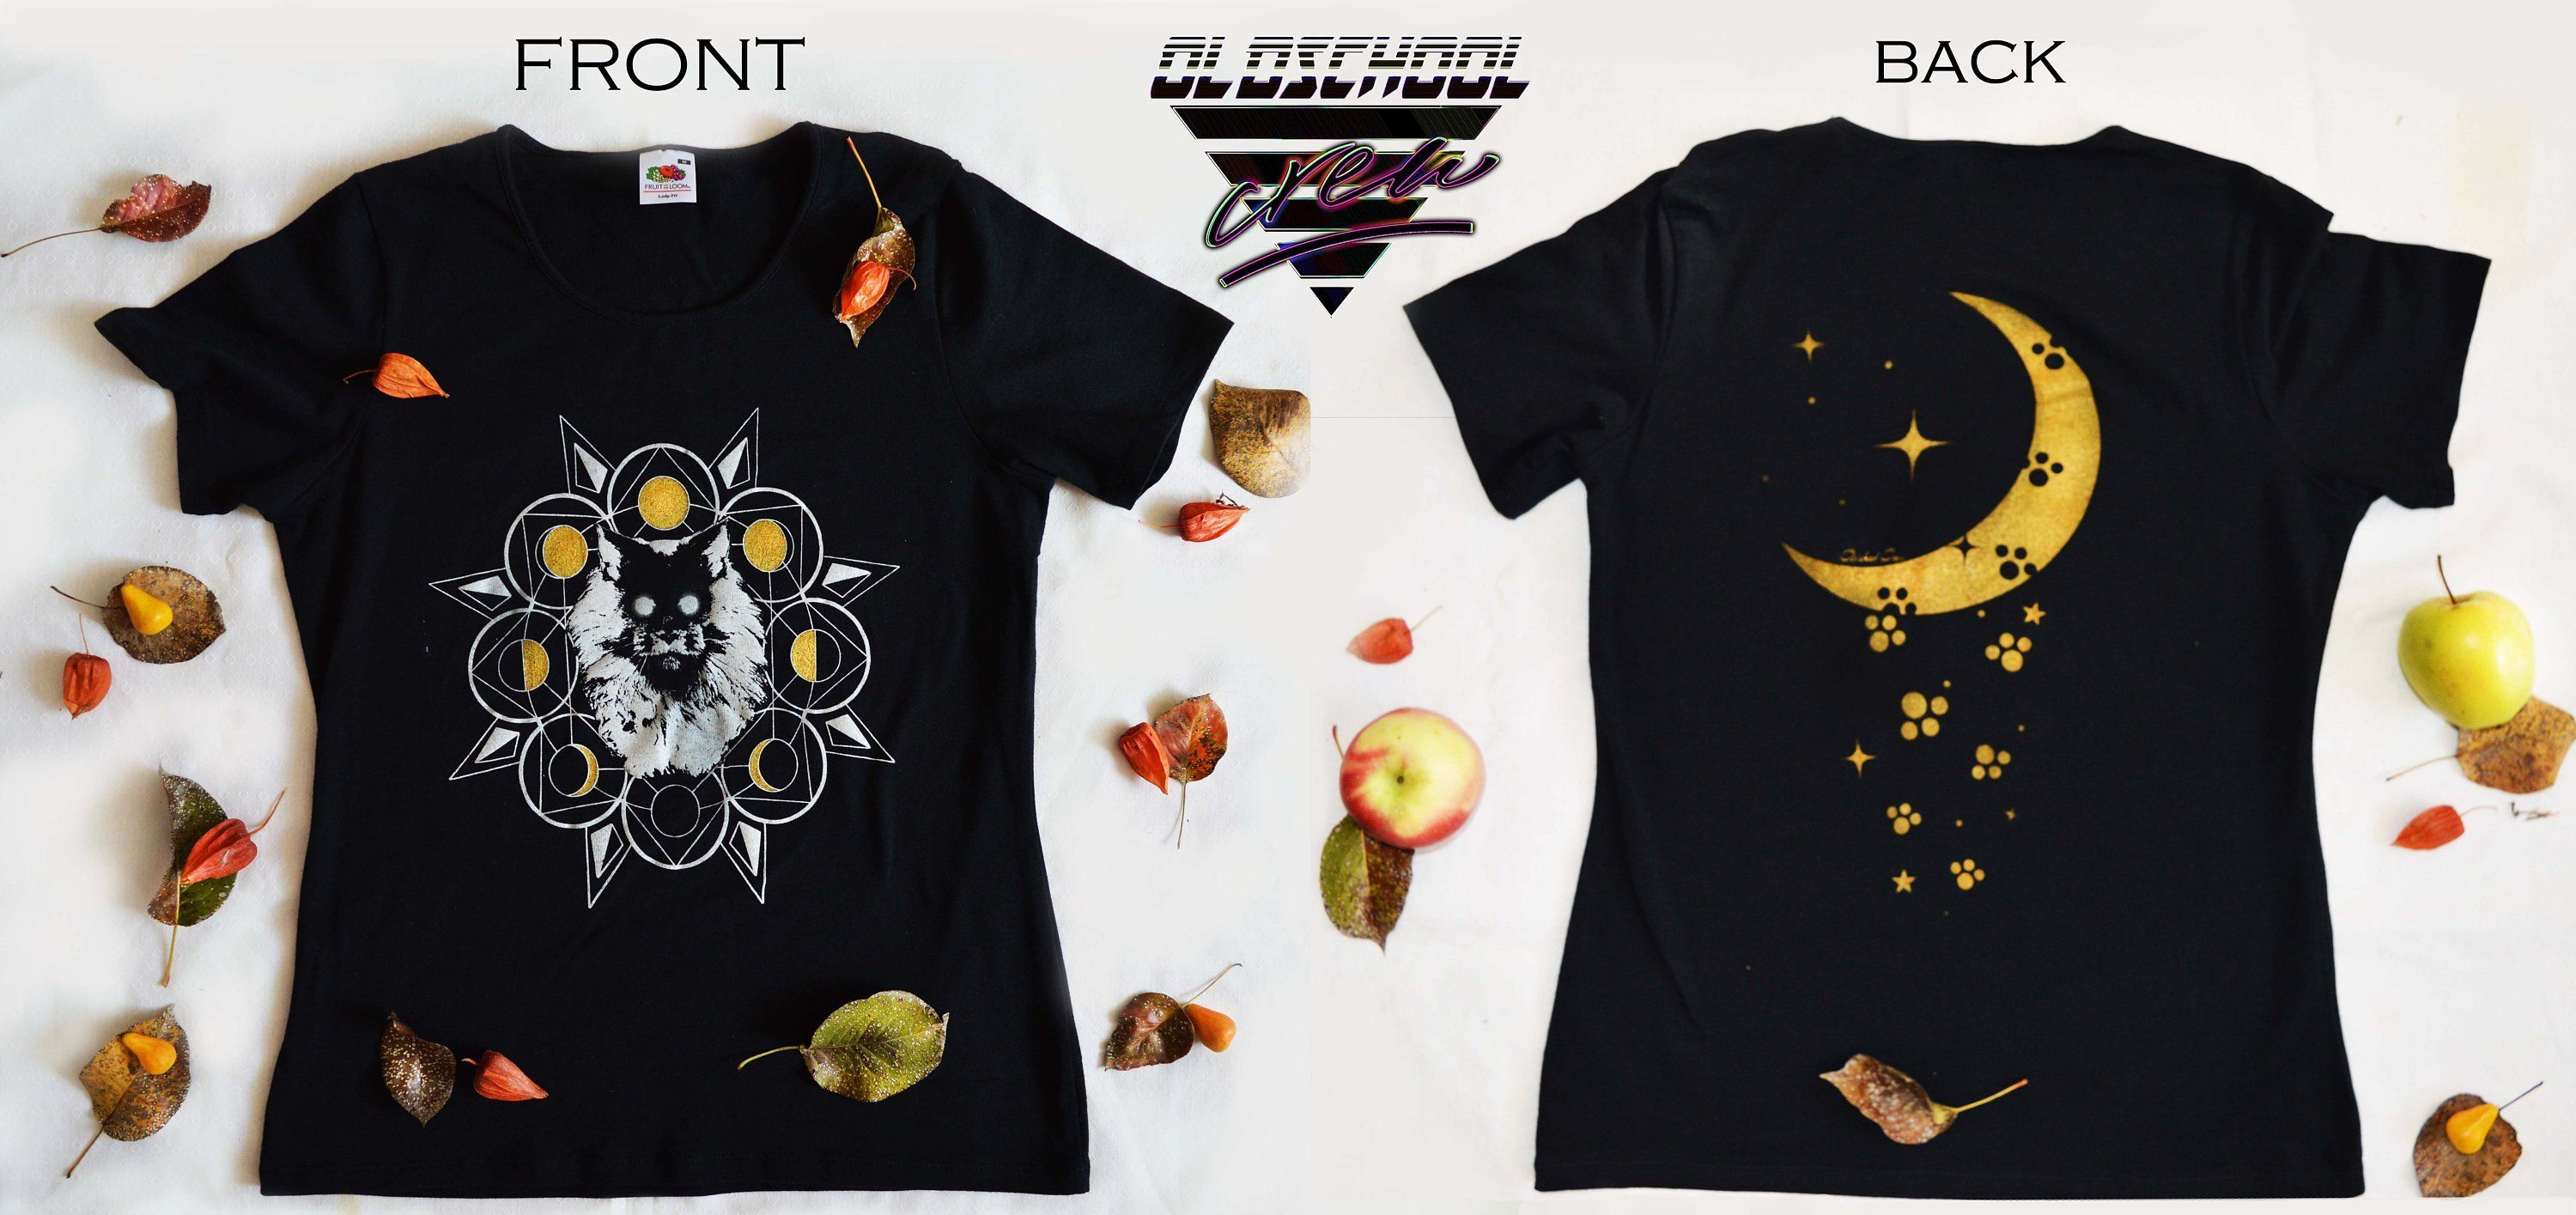 a886bb000d4a1 Pin by ArtOfThea on fuck off society outfit | T shirts for women ...